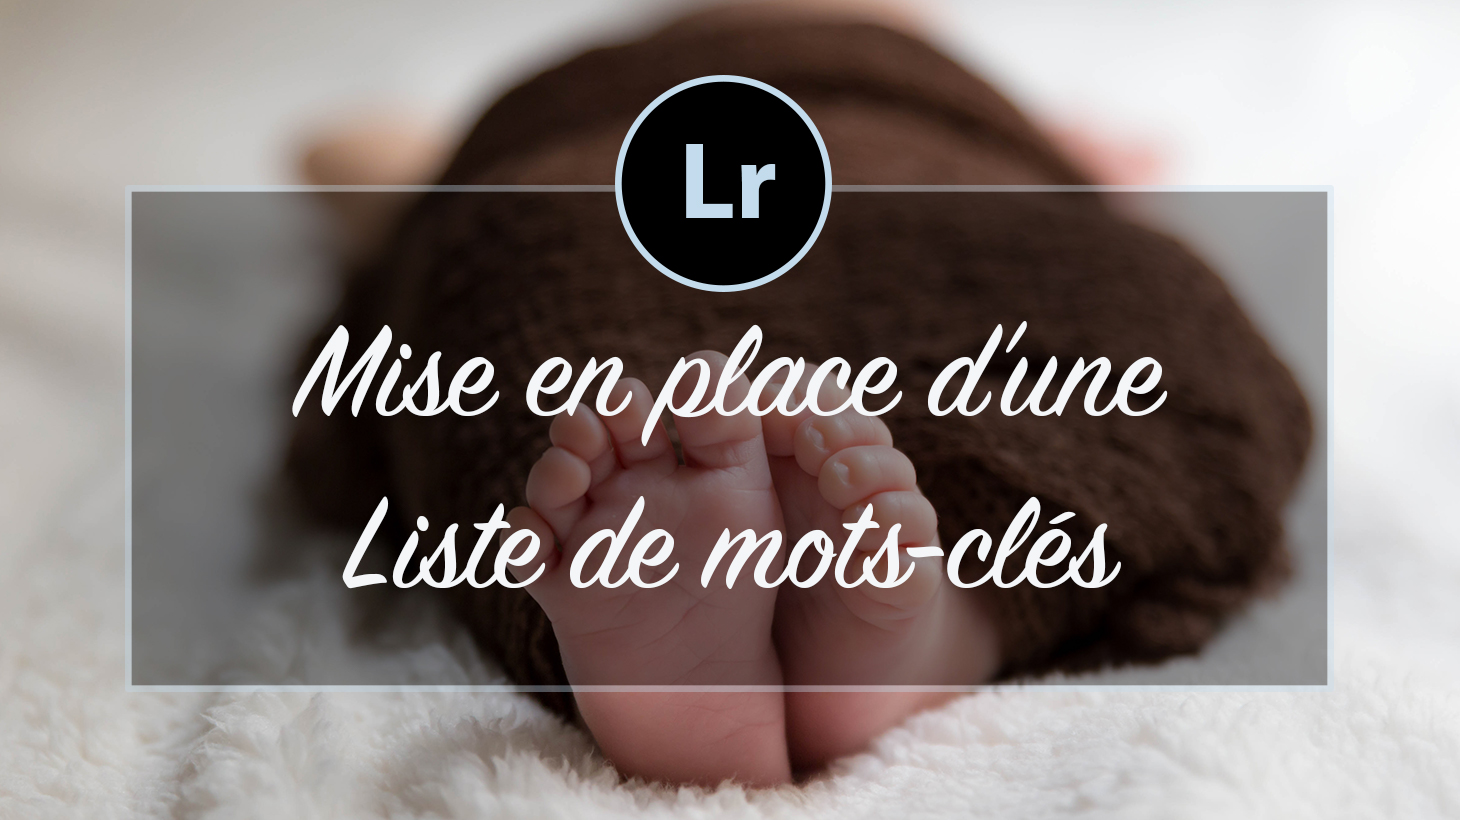 [VIDEO] – Mise en place d'une liste de mots-clés Lightroom